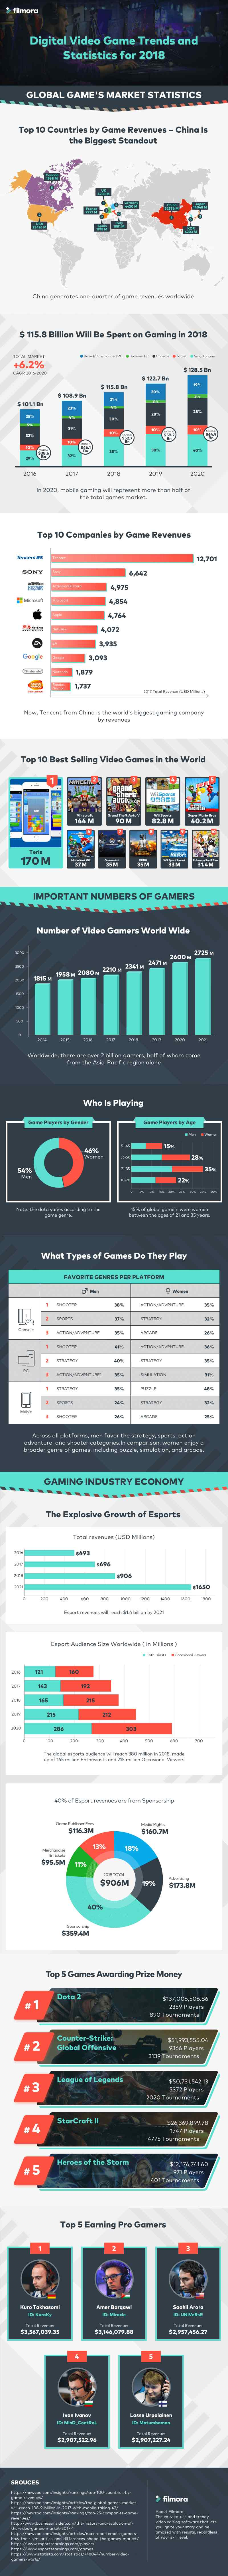 Global mobile gaming revenue is expected to reach $64 billion in